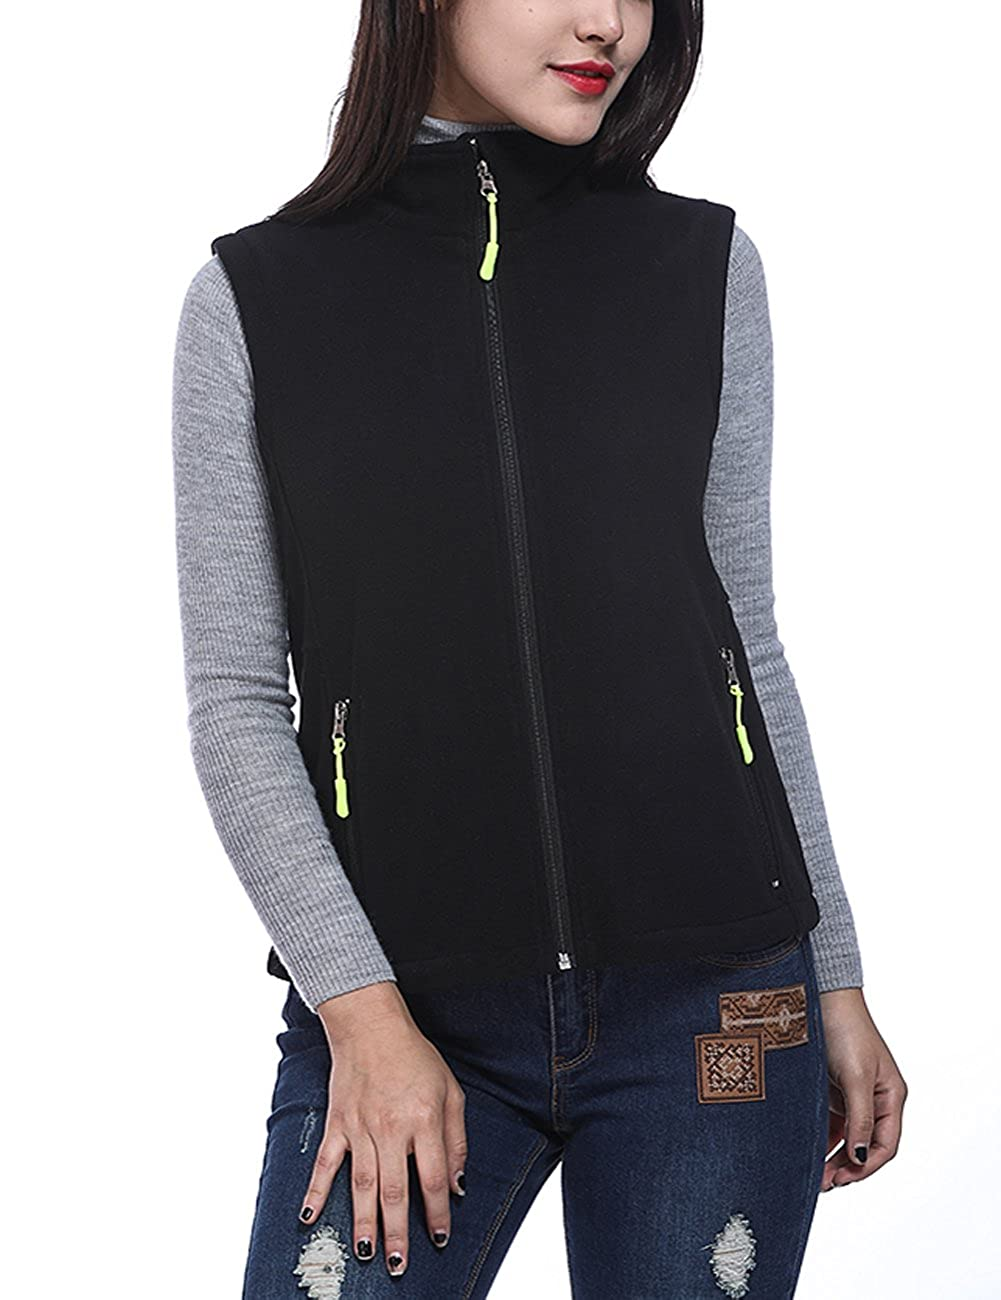 HEQU Soft Sweater Front Zip Fleece Vest